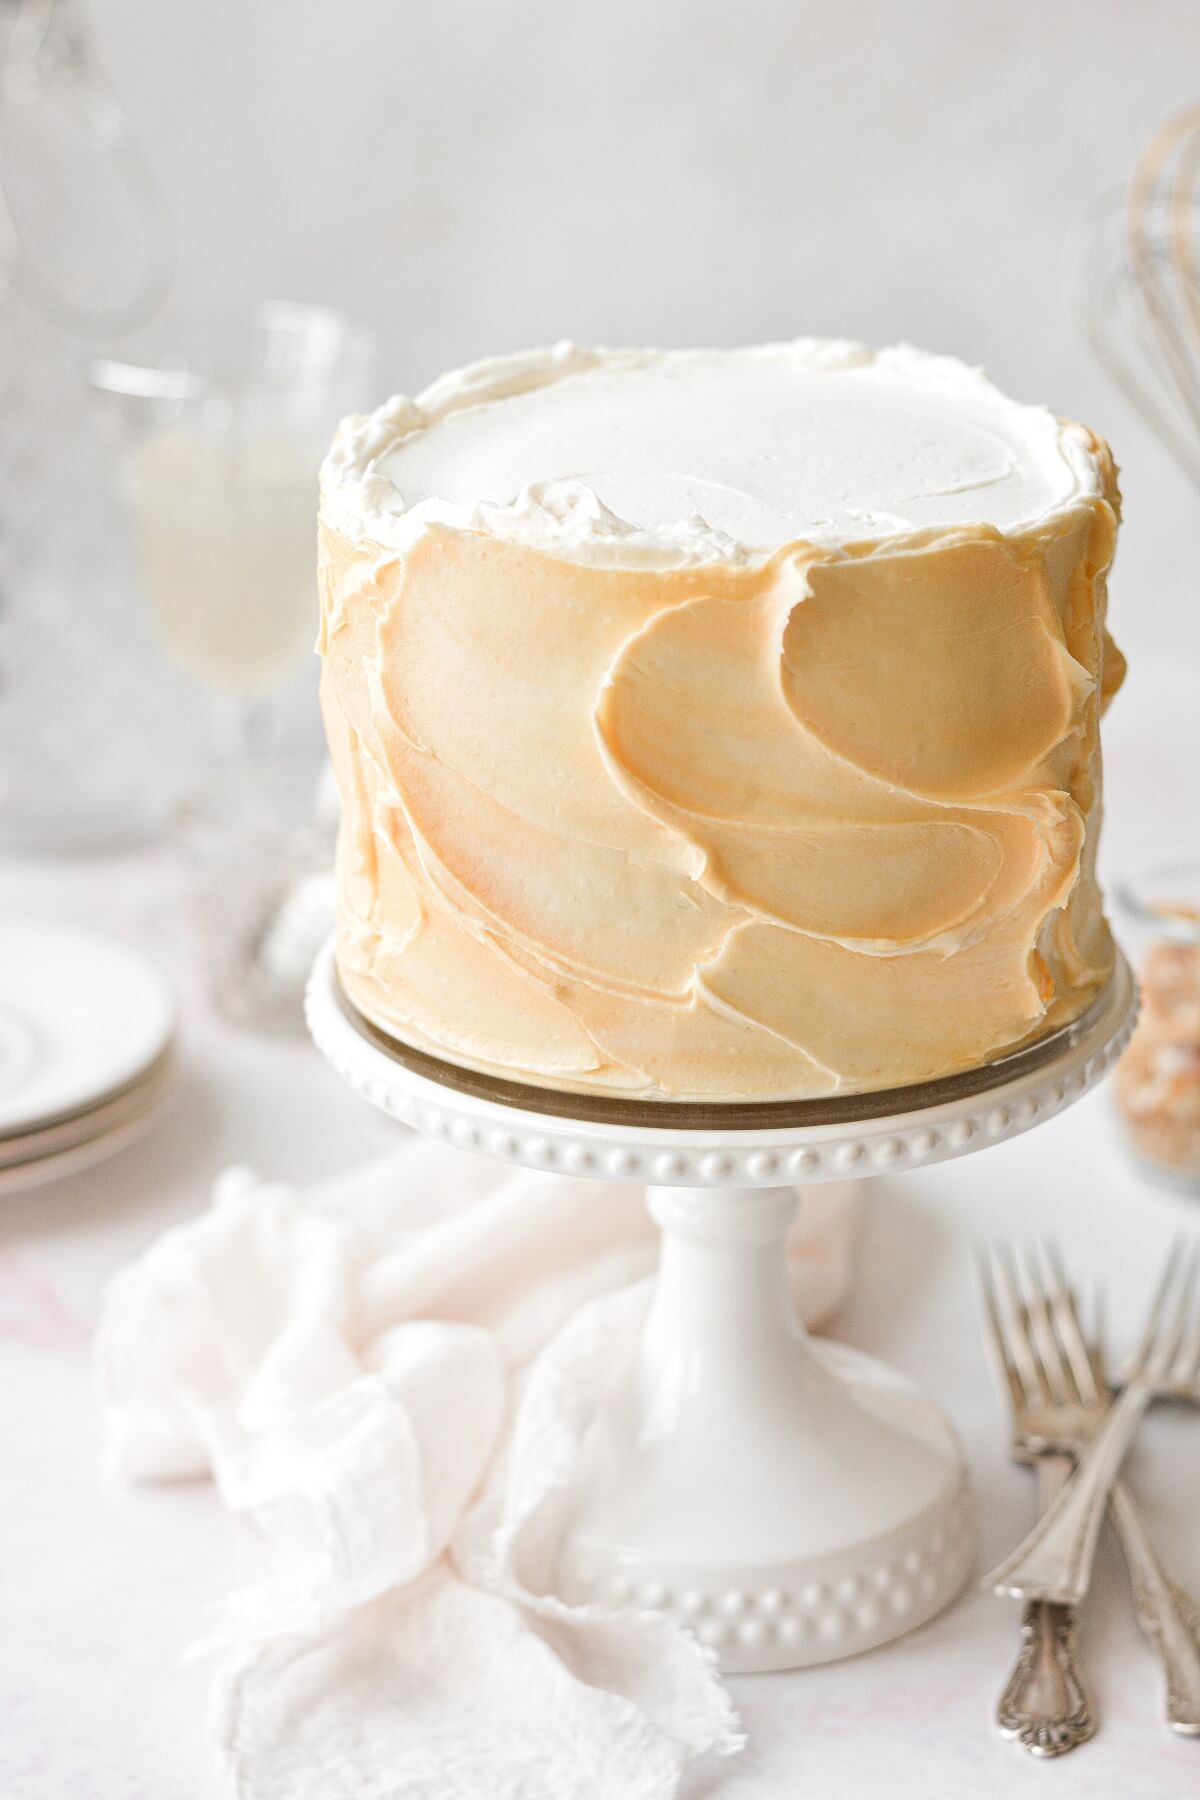 Mimosa cake on a white cake stand.